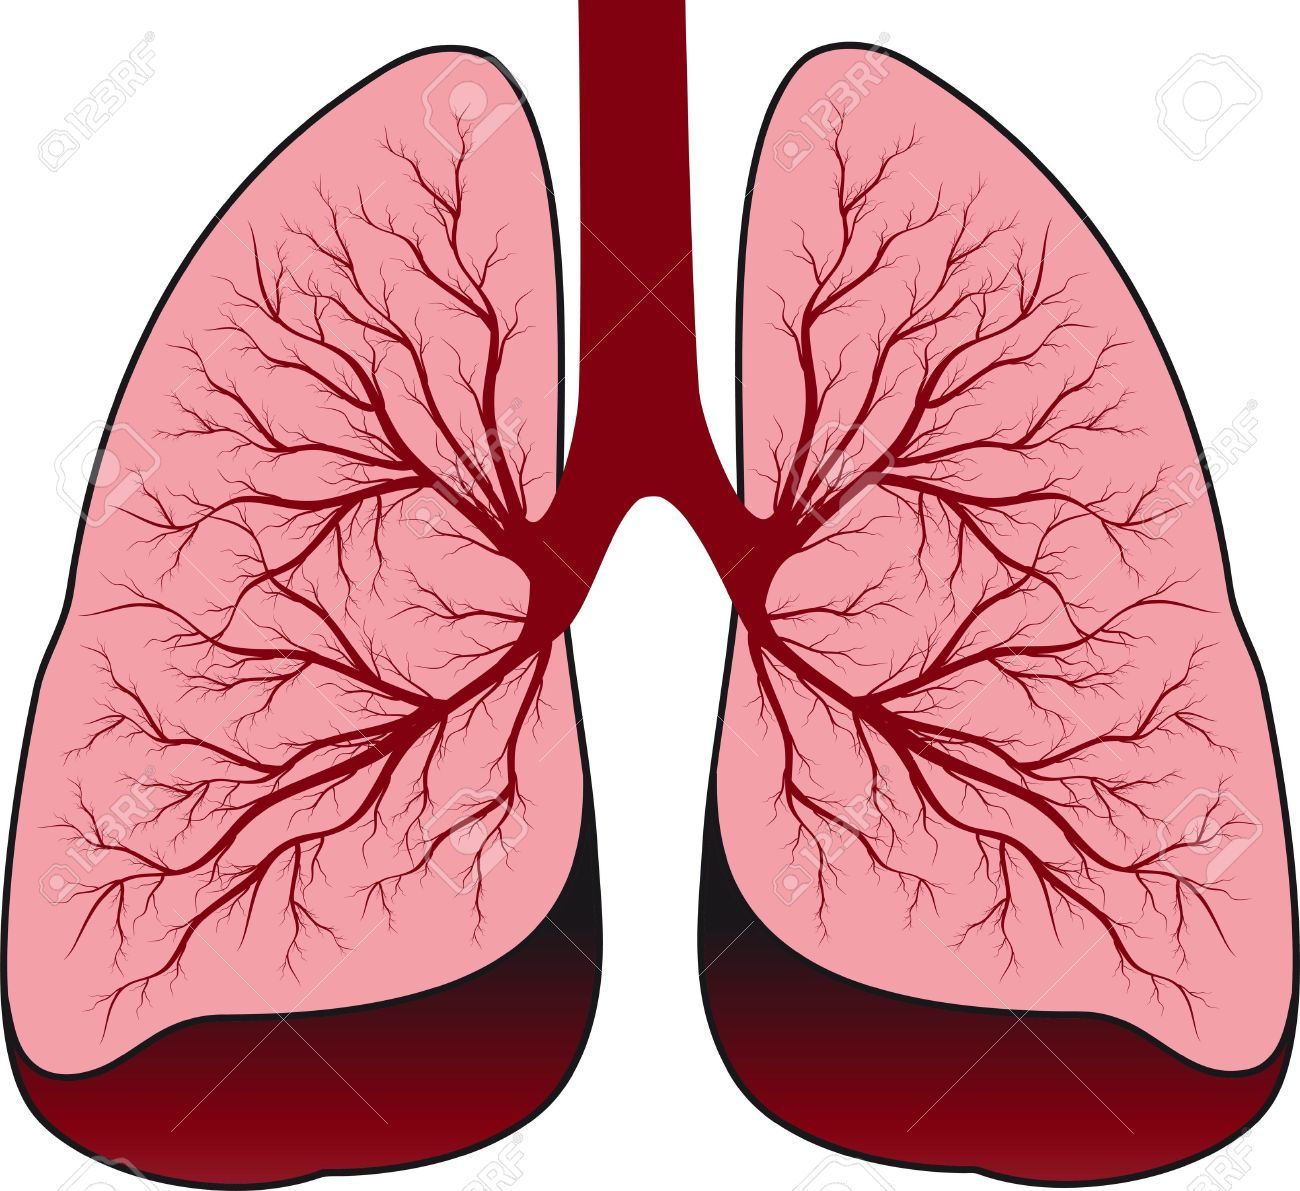 1300x1191 Clipart Of Human Lungs